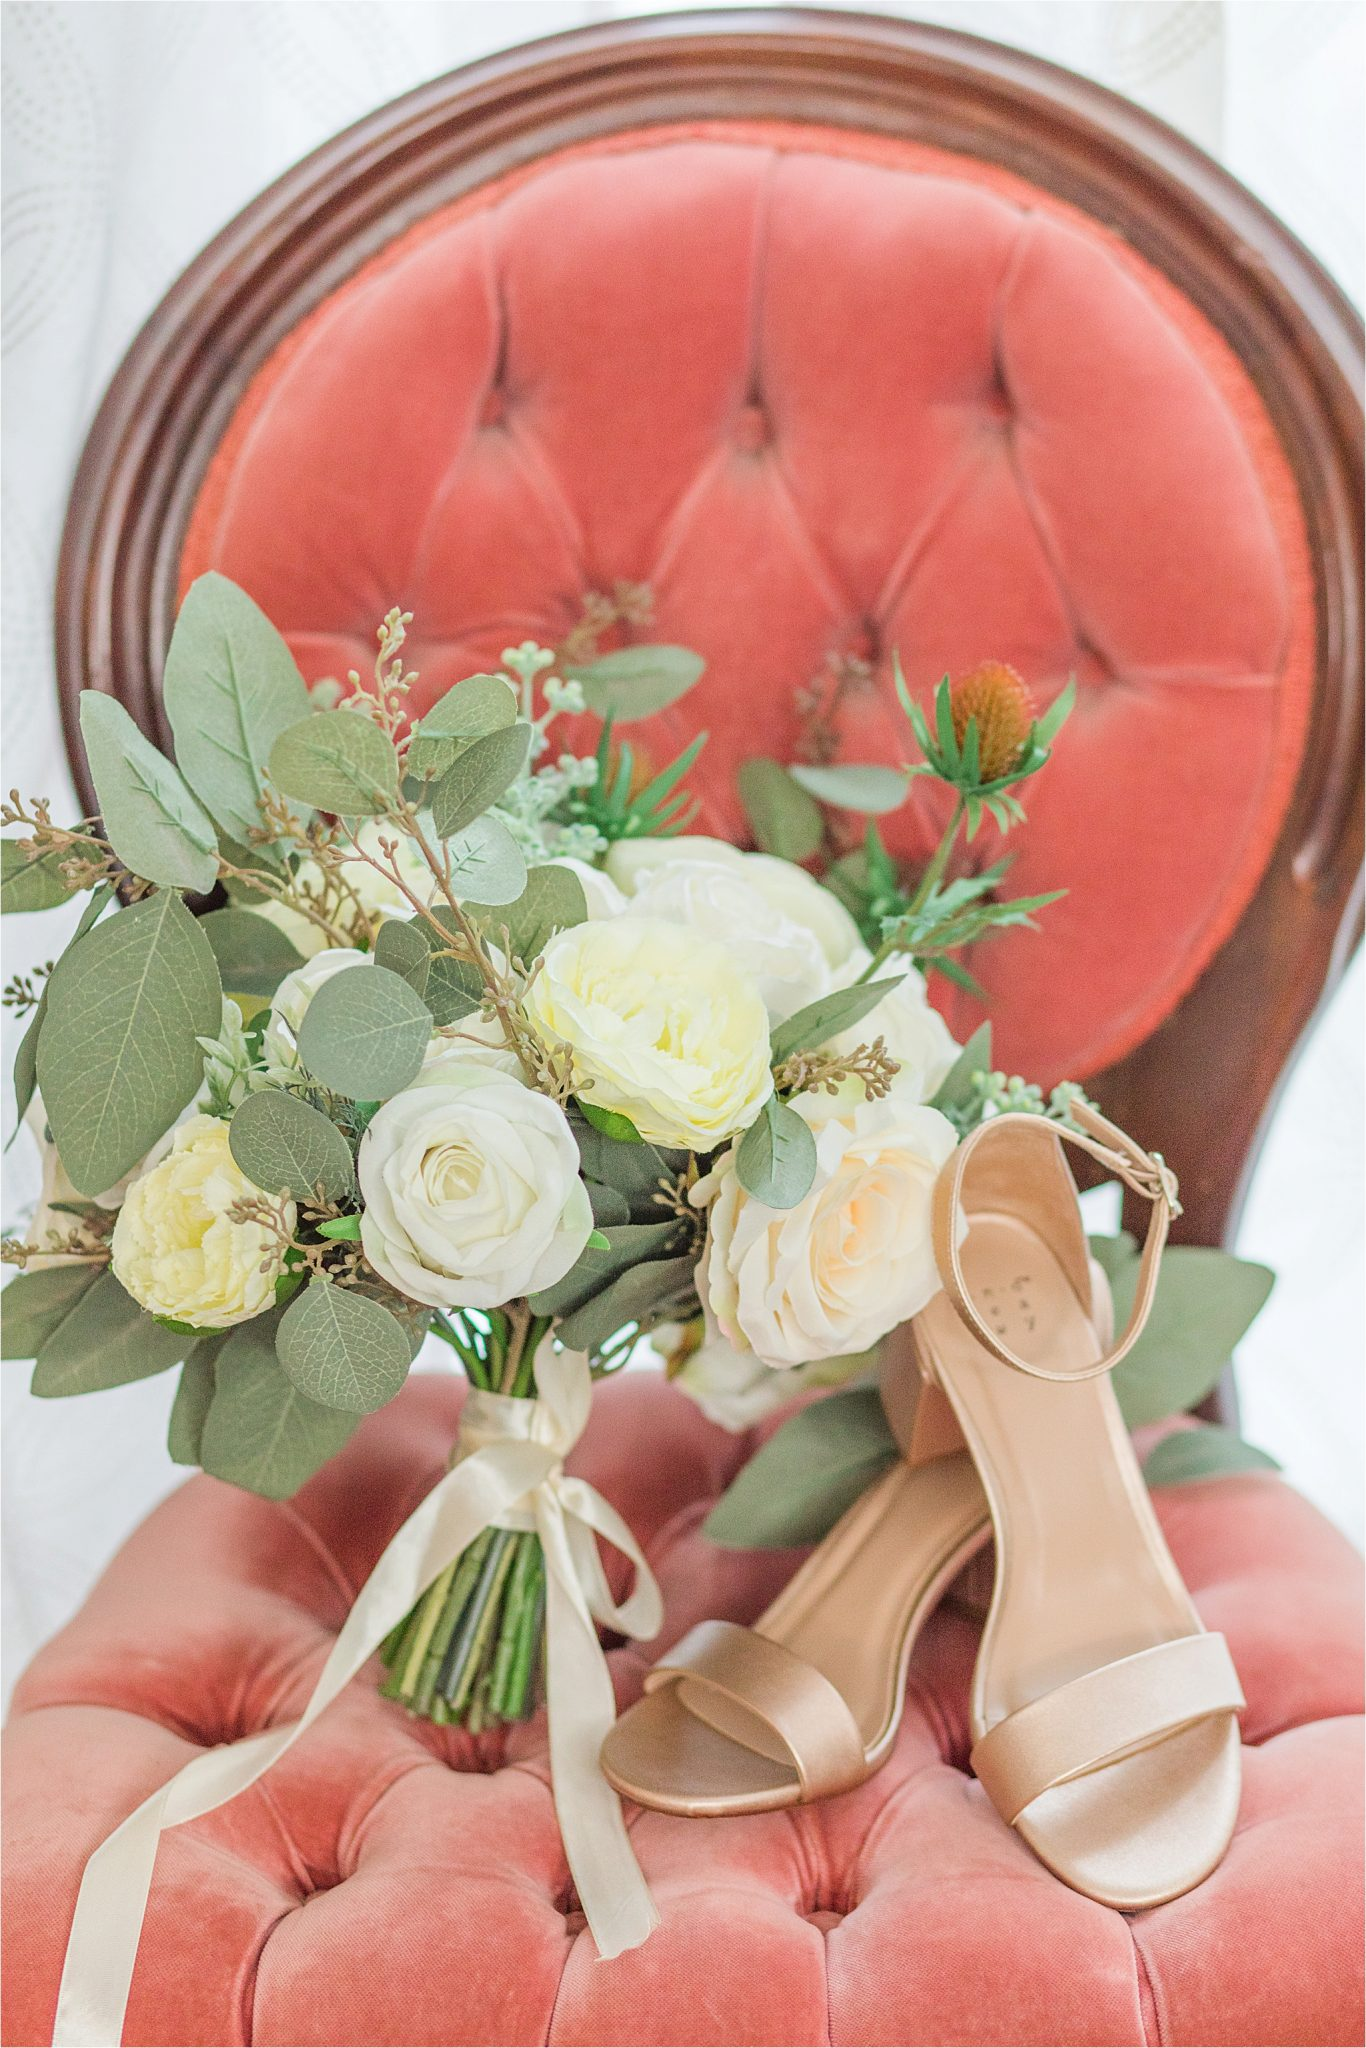 blush-vintage-coushion-antique-chair-rose-gold-wedding-shoes-white-bouqet